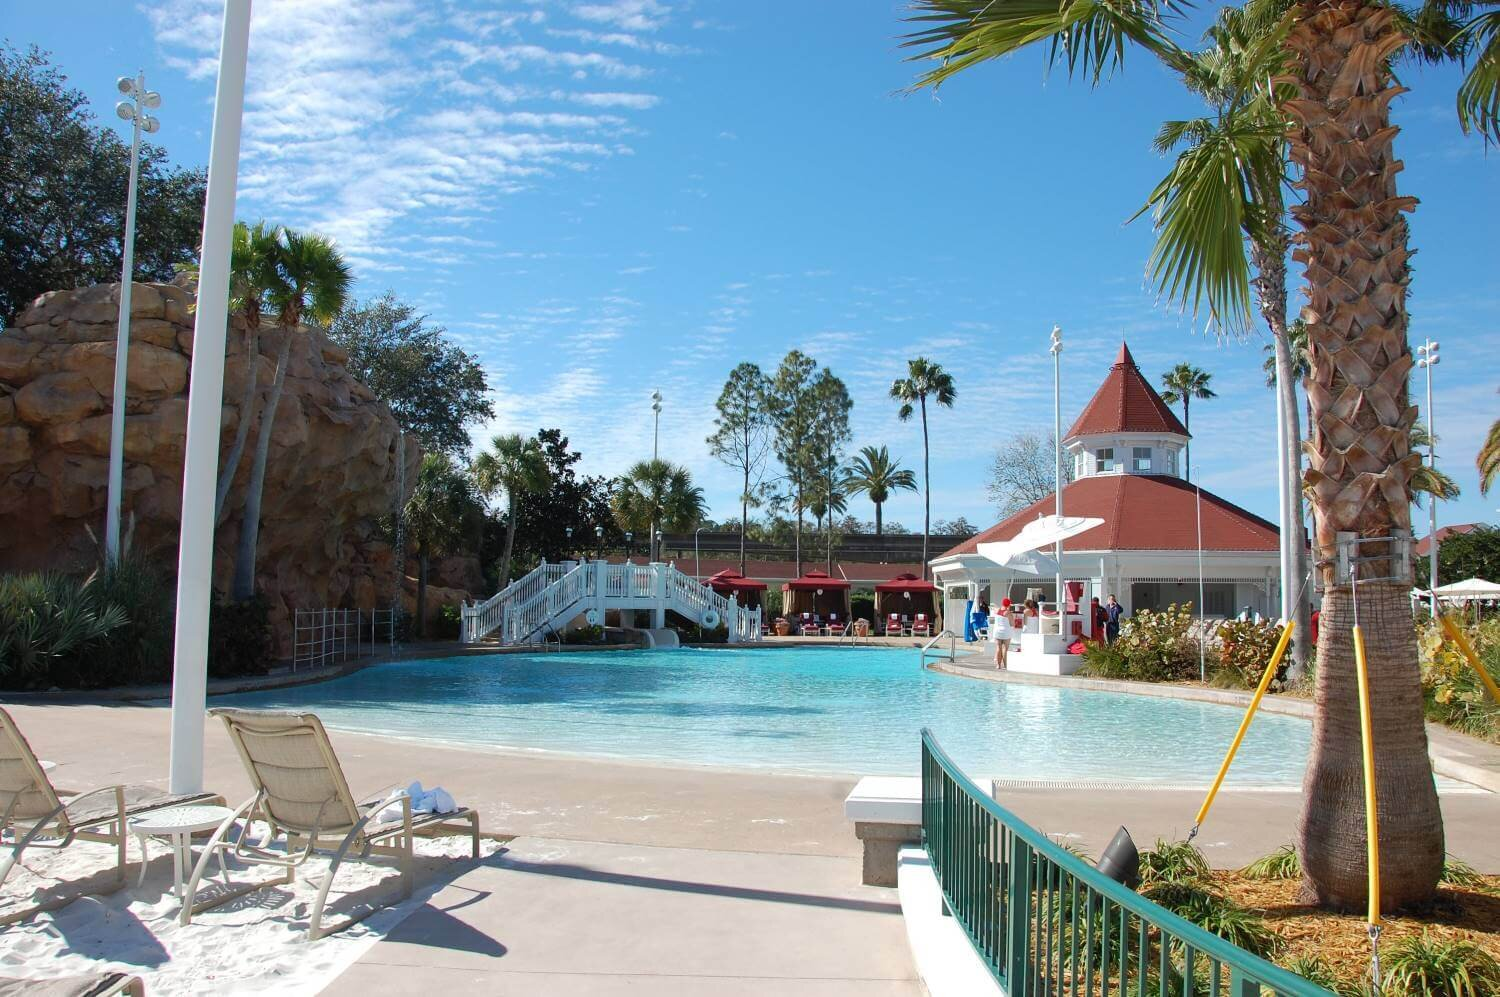 The Beach Pool is a great place to get away and cool off in the Florida heat.